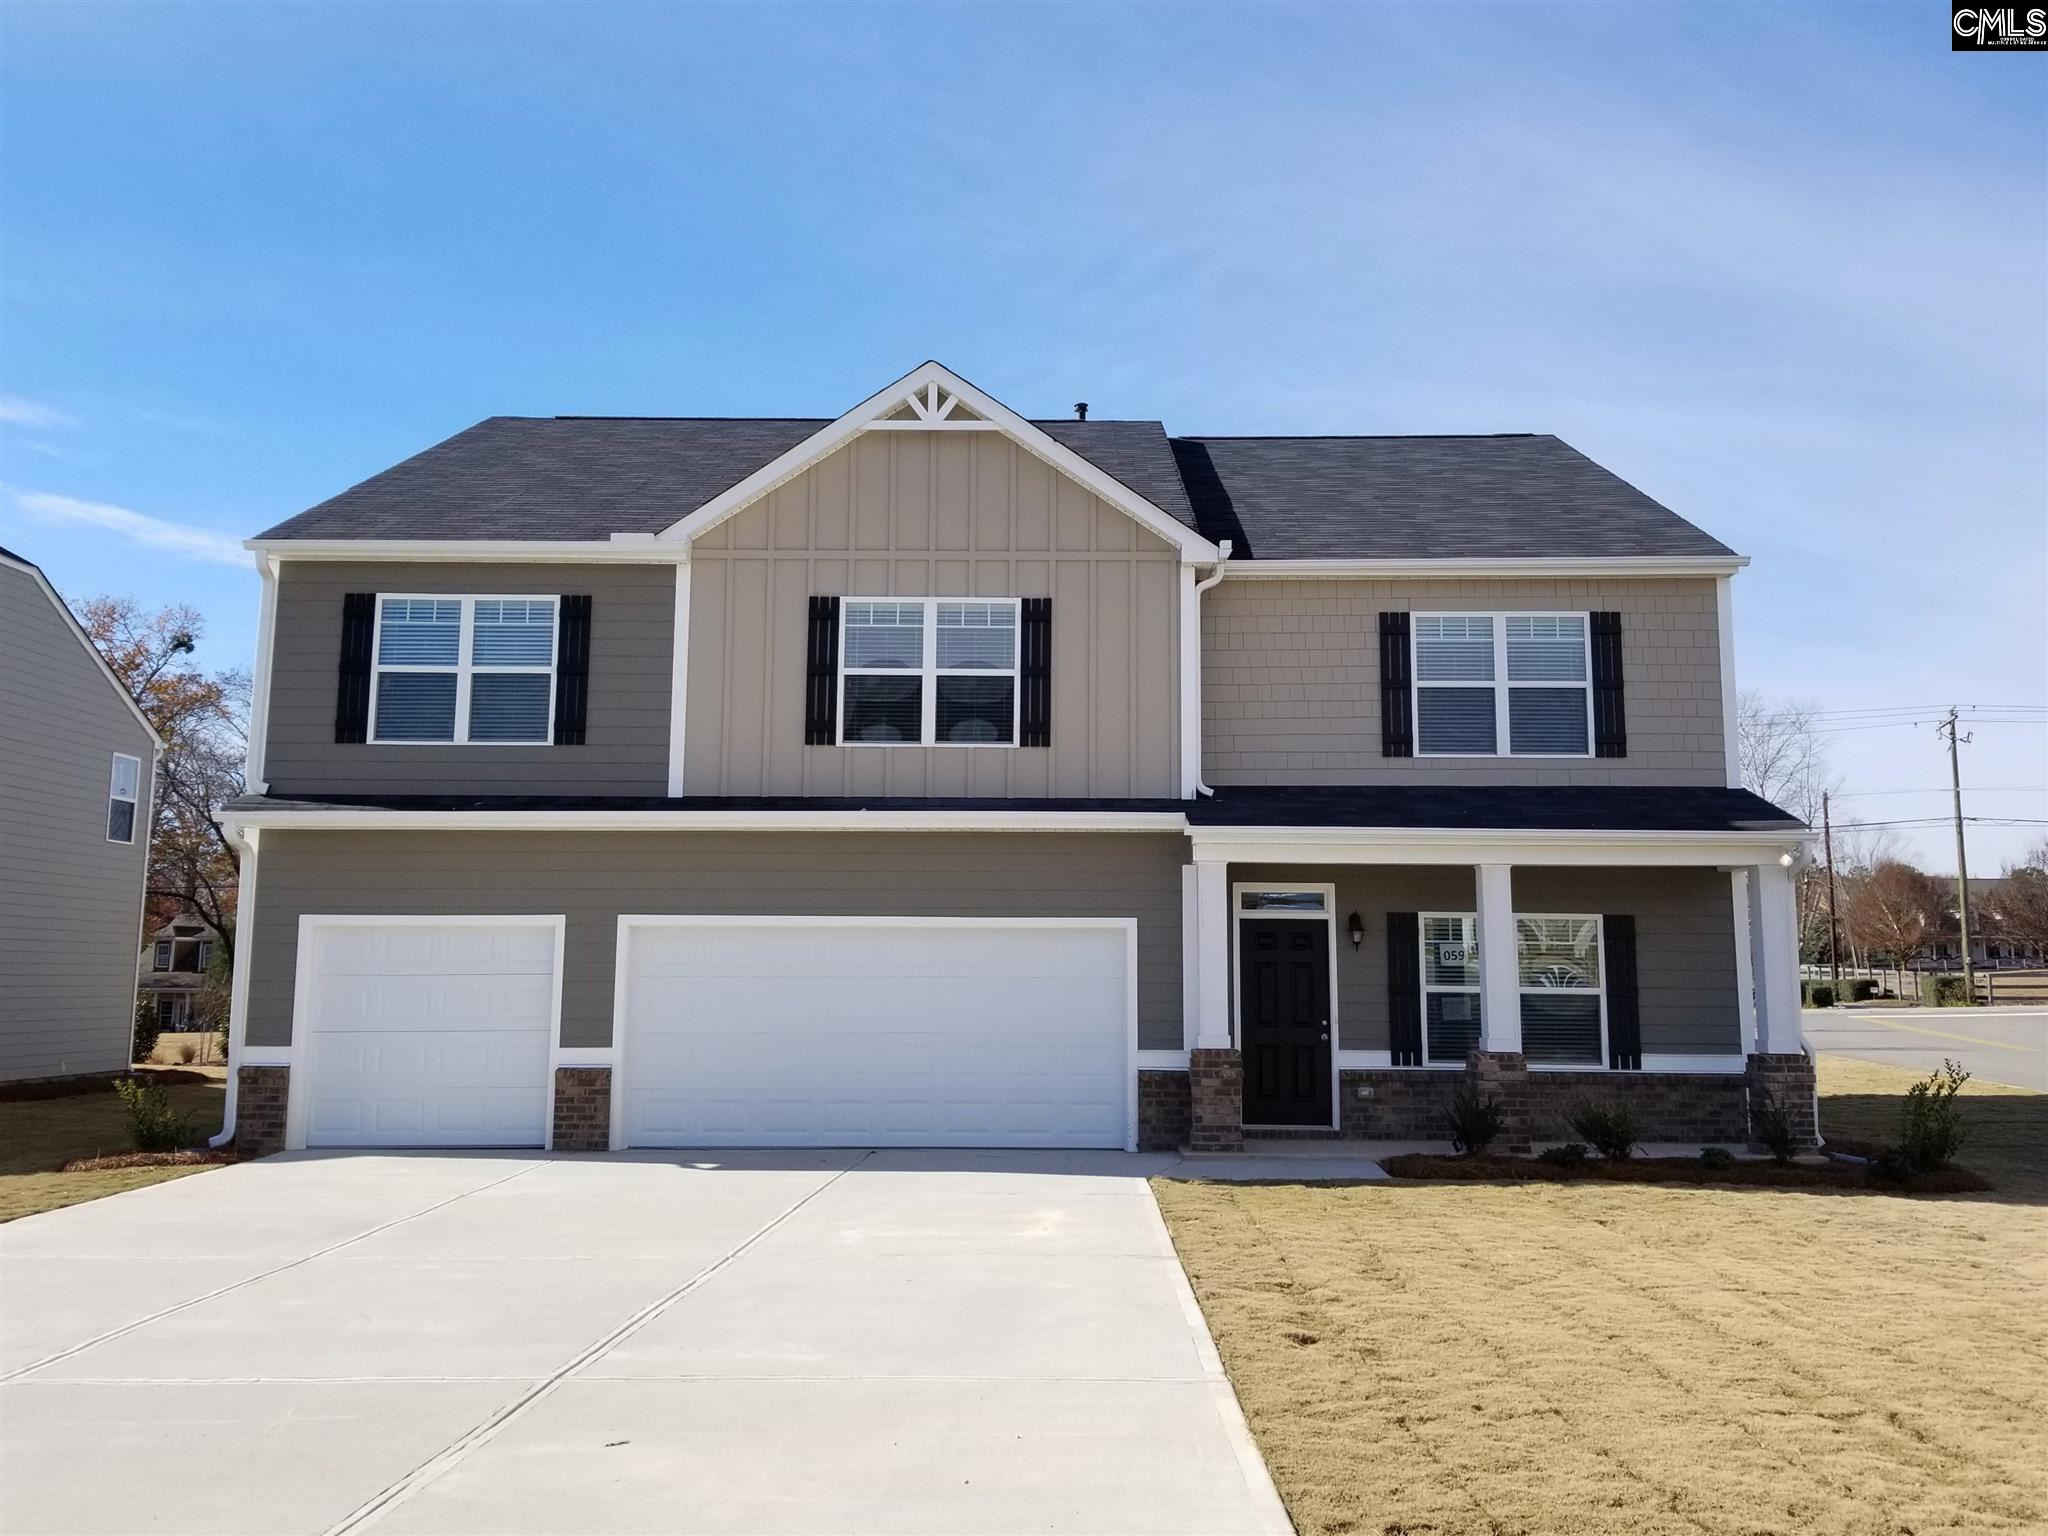 287 Coatbridge Blythewood, SC 29016